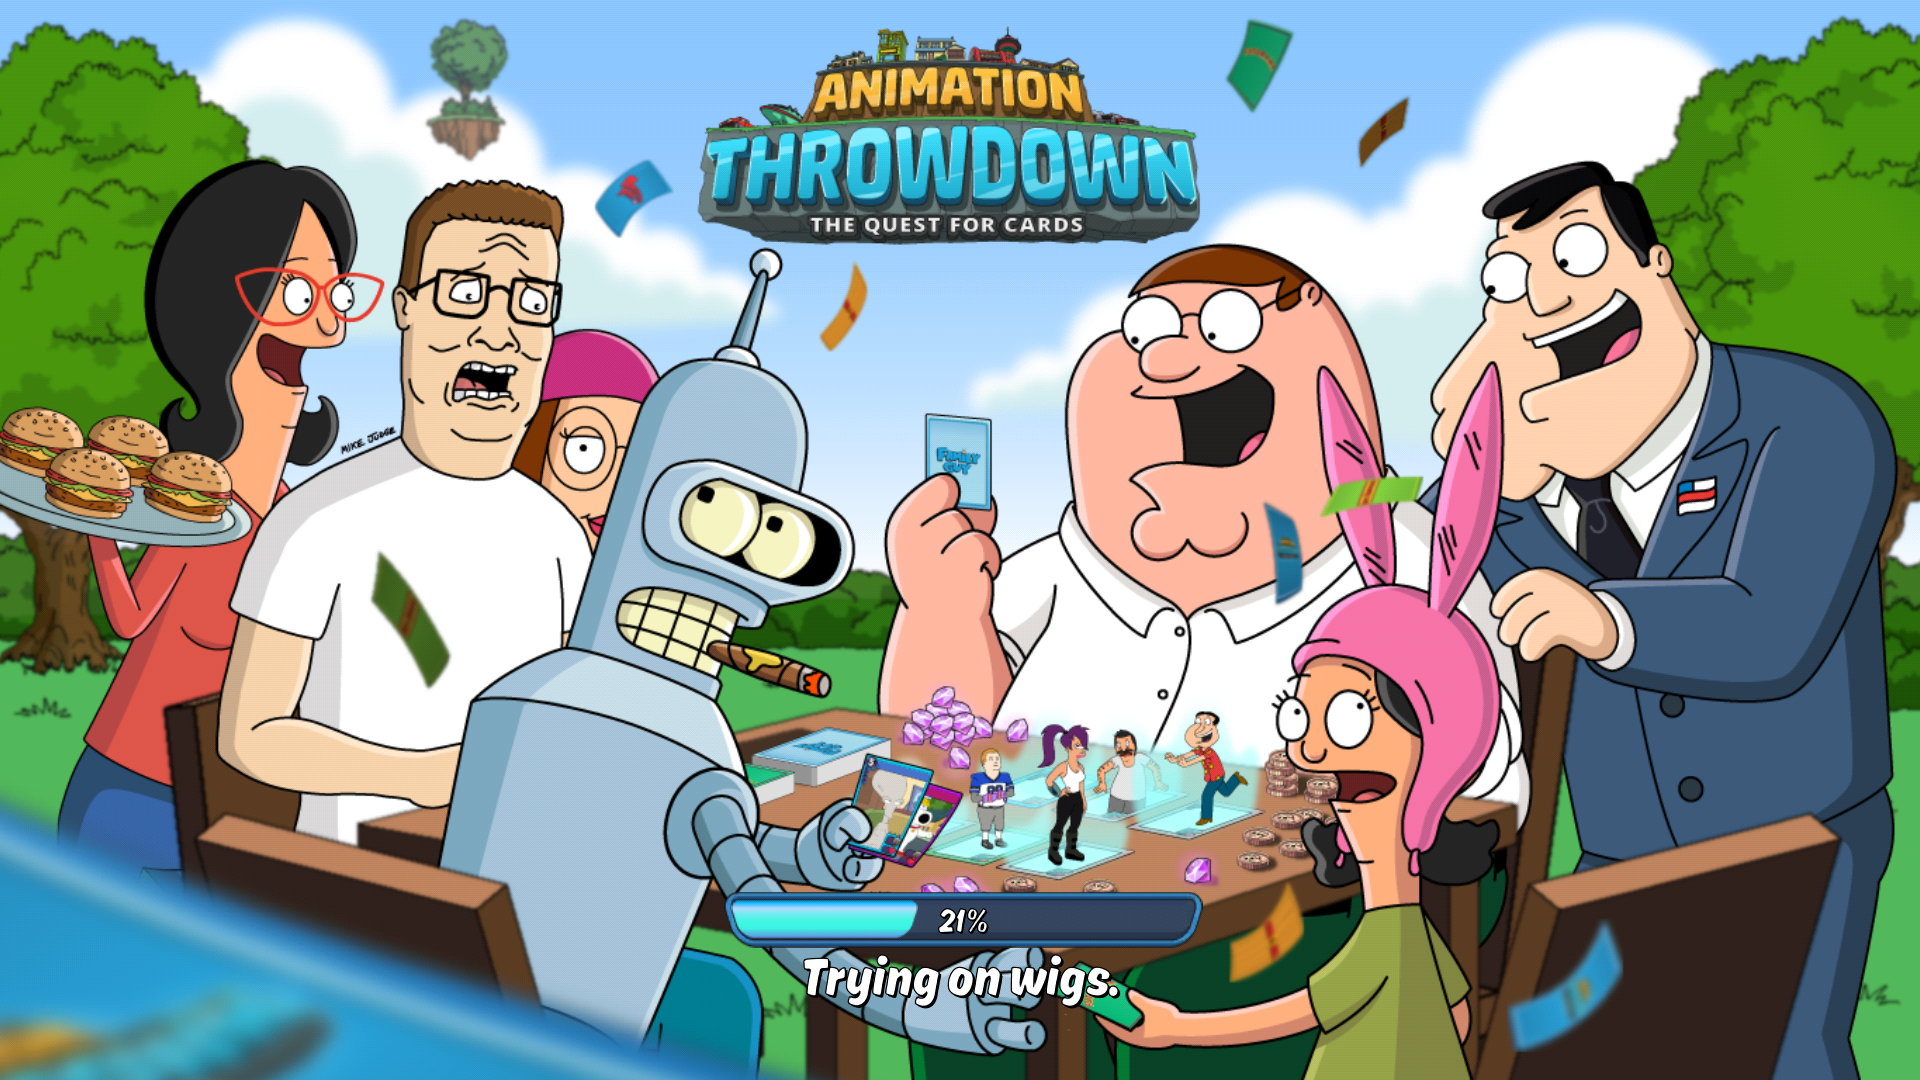 Animation Throwdown